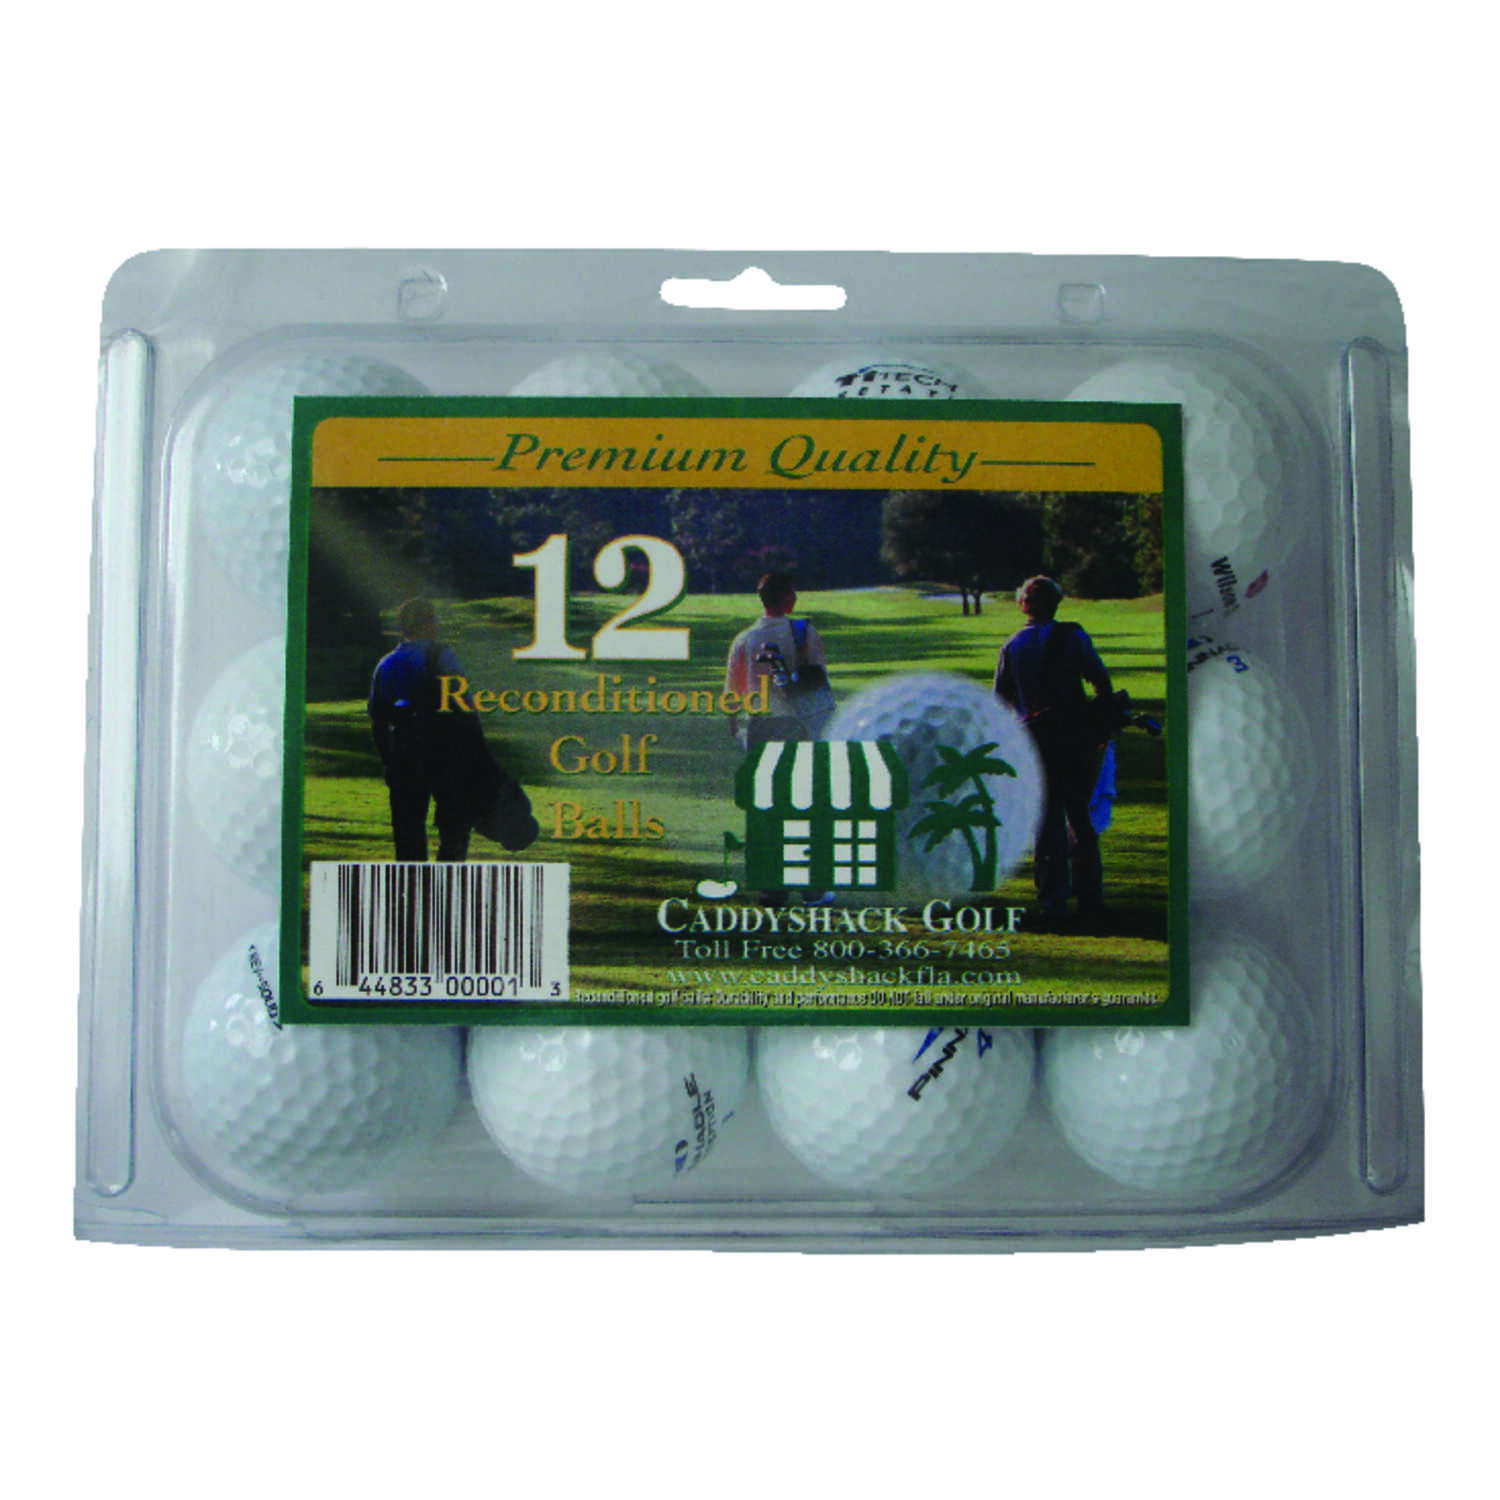 Caddy Shack Golf  TiTech Reconditioned  1.375  Golf Balls